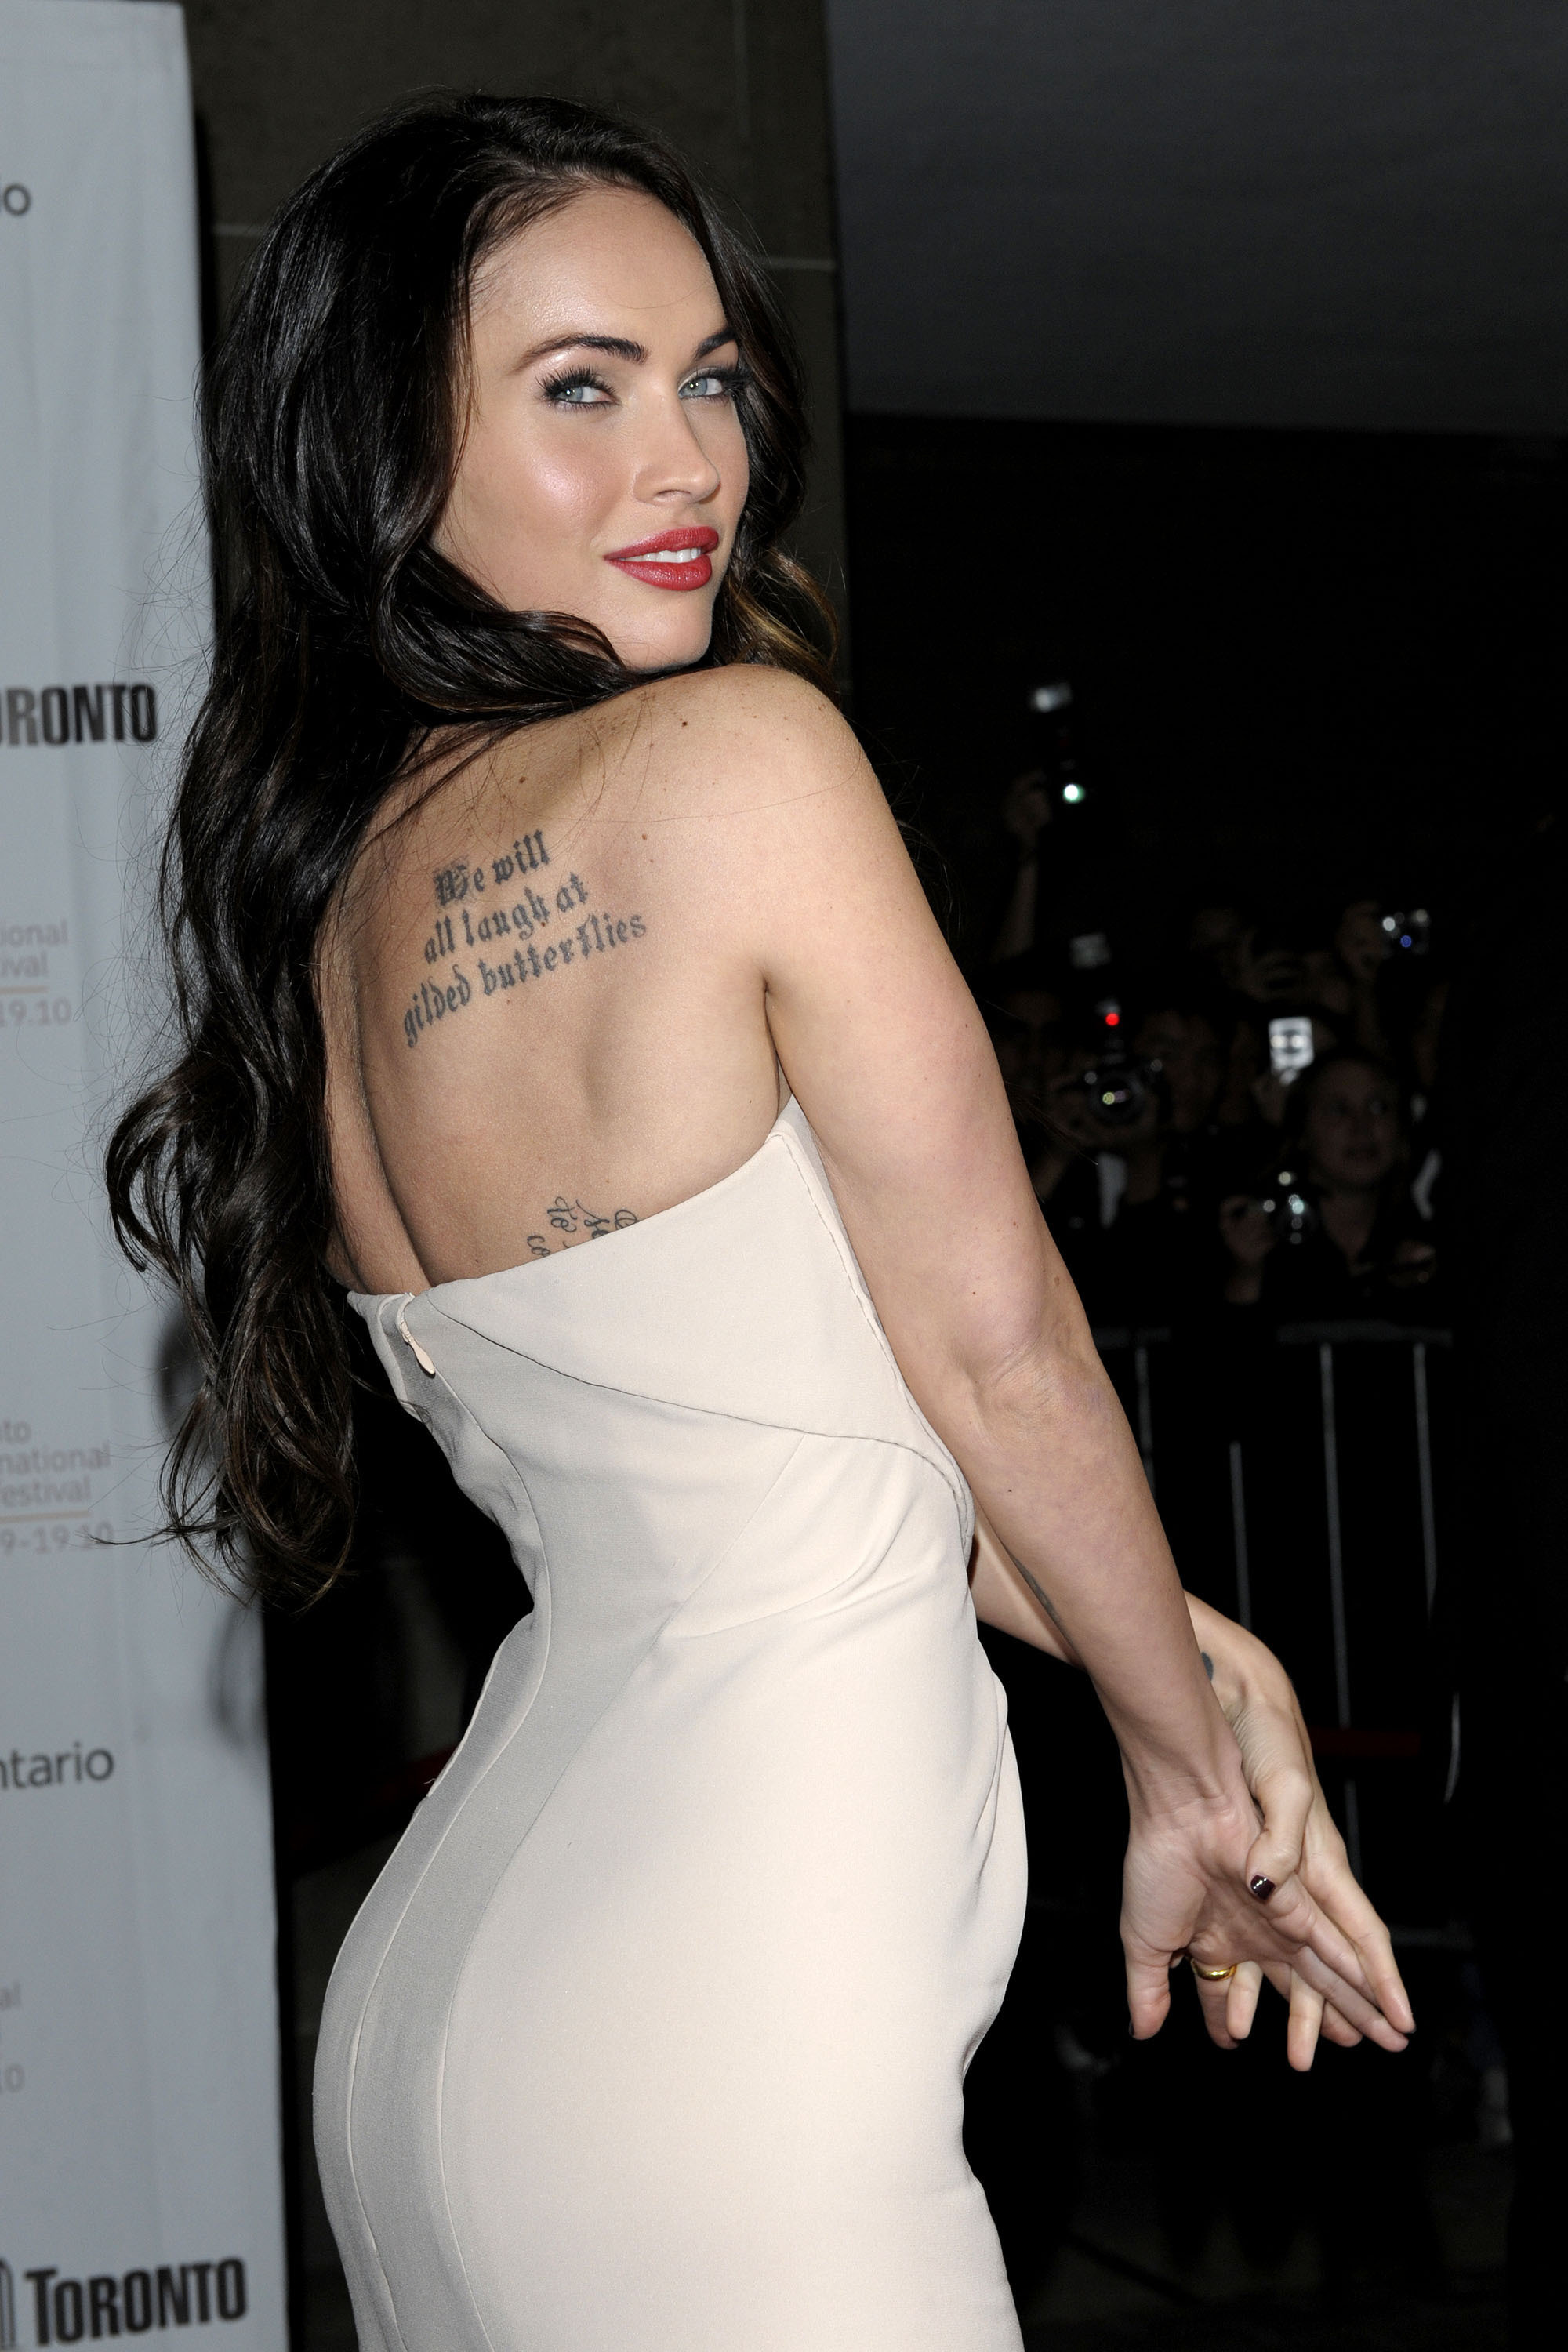 Ever wondered what Megan Fox's tattoo says? Here's a nice, close shot of it.